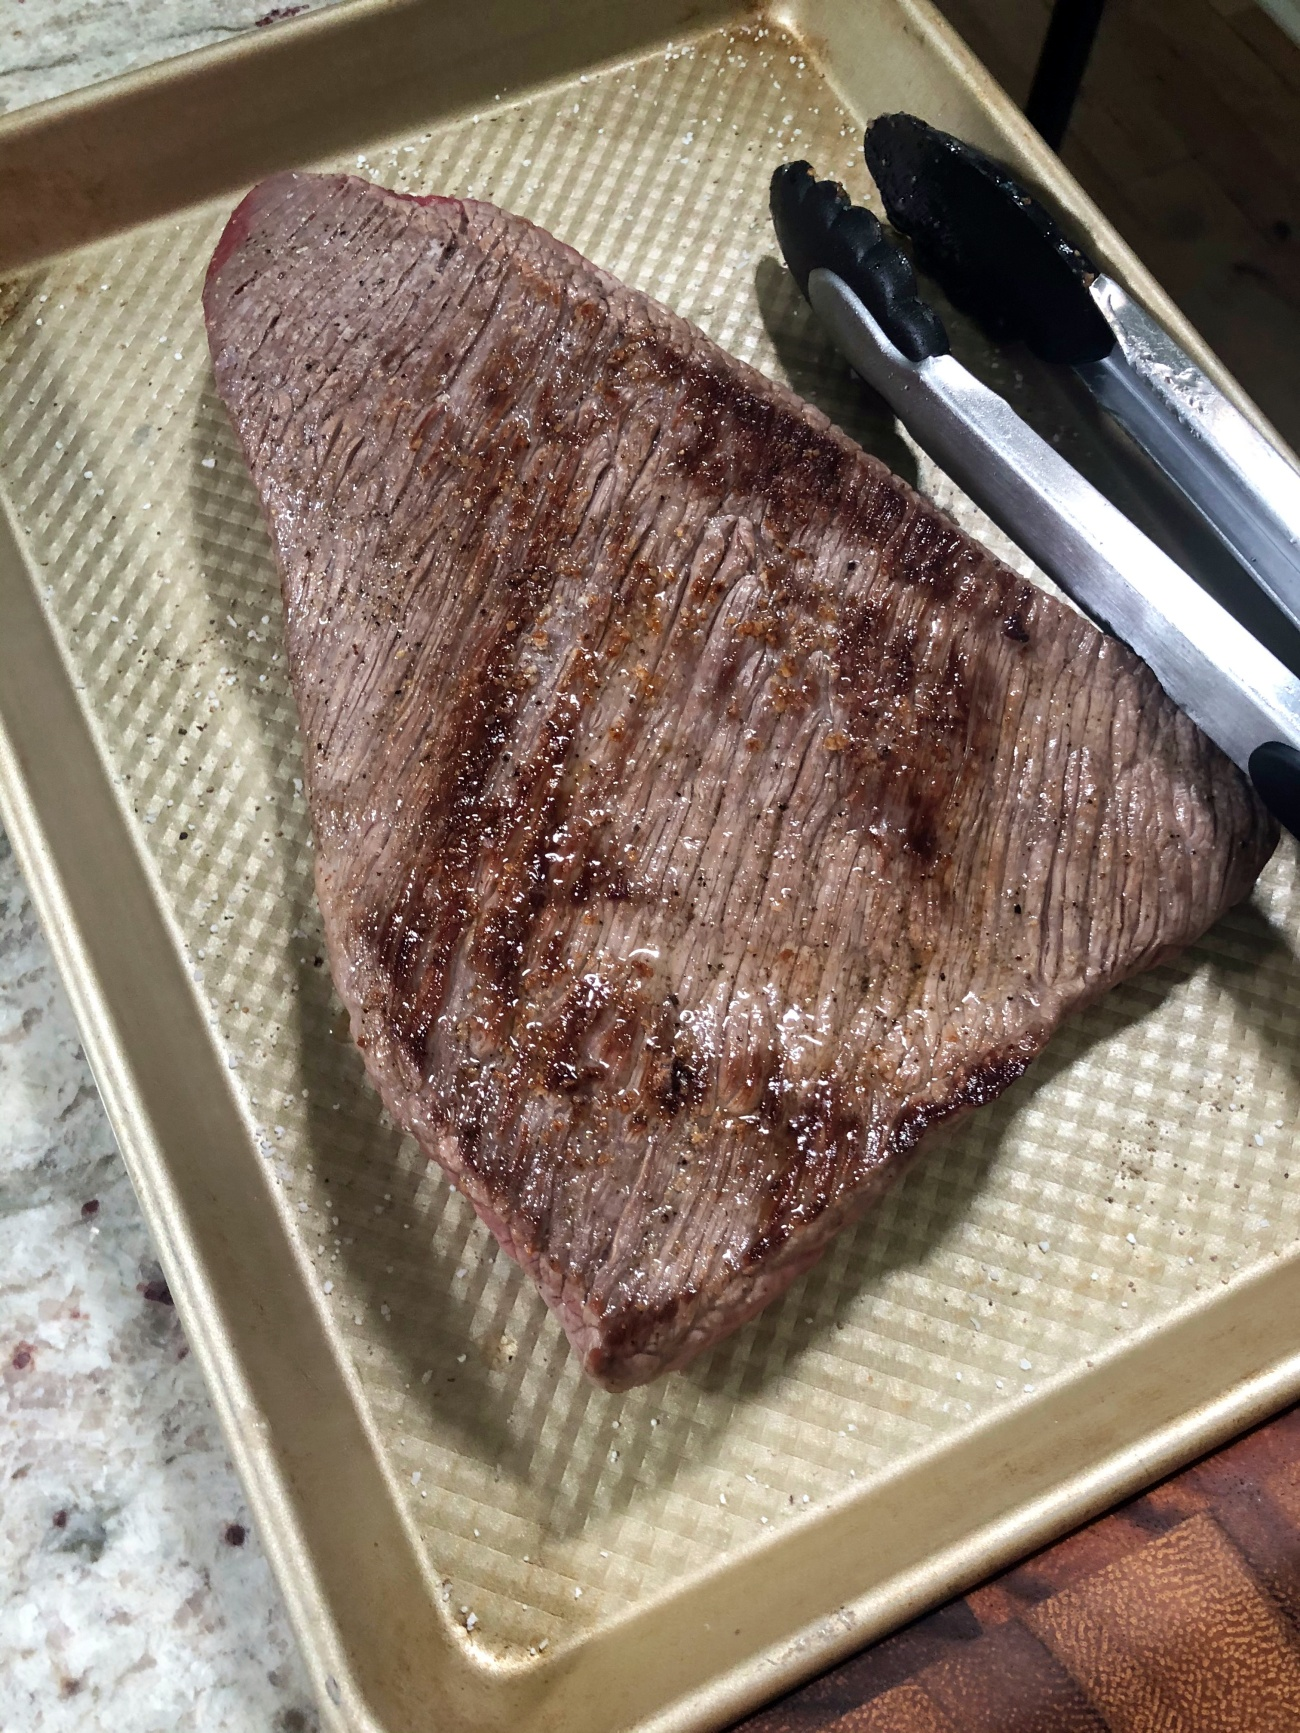 Add the brisket, fat side down. Sear for about 1 minute per side, building a nice dark crust, then remove.